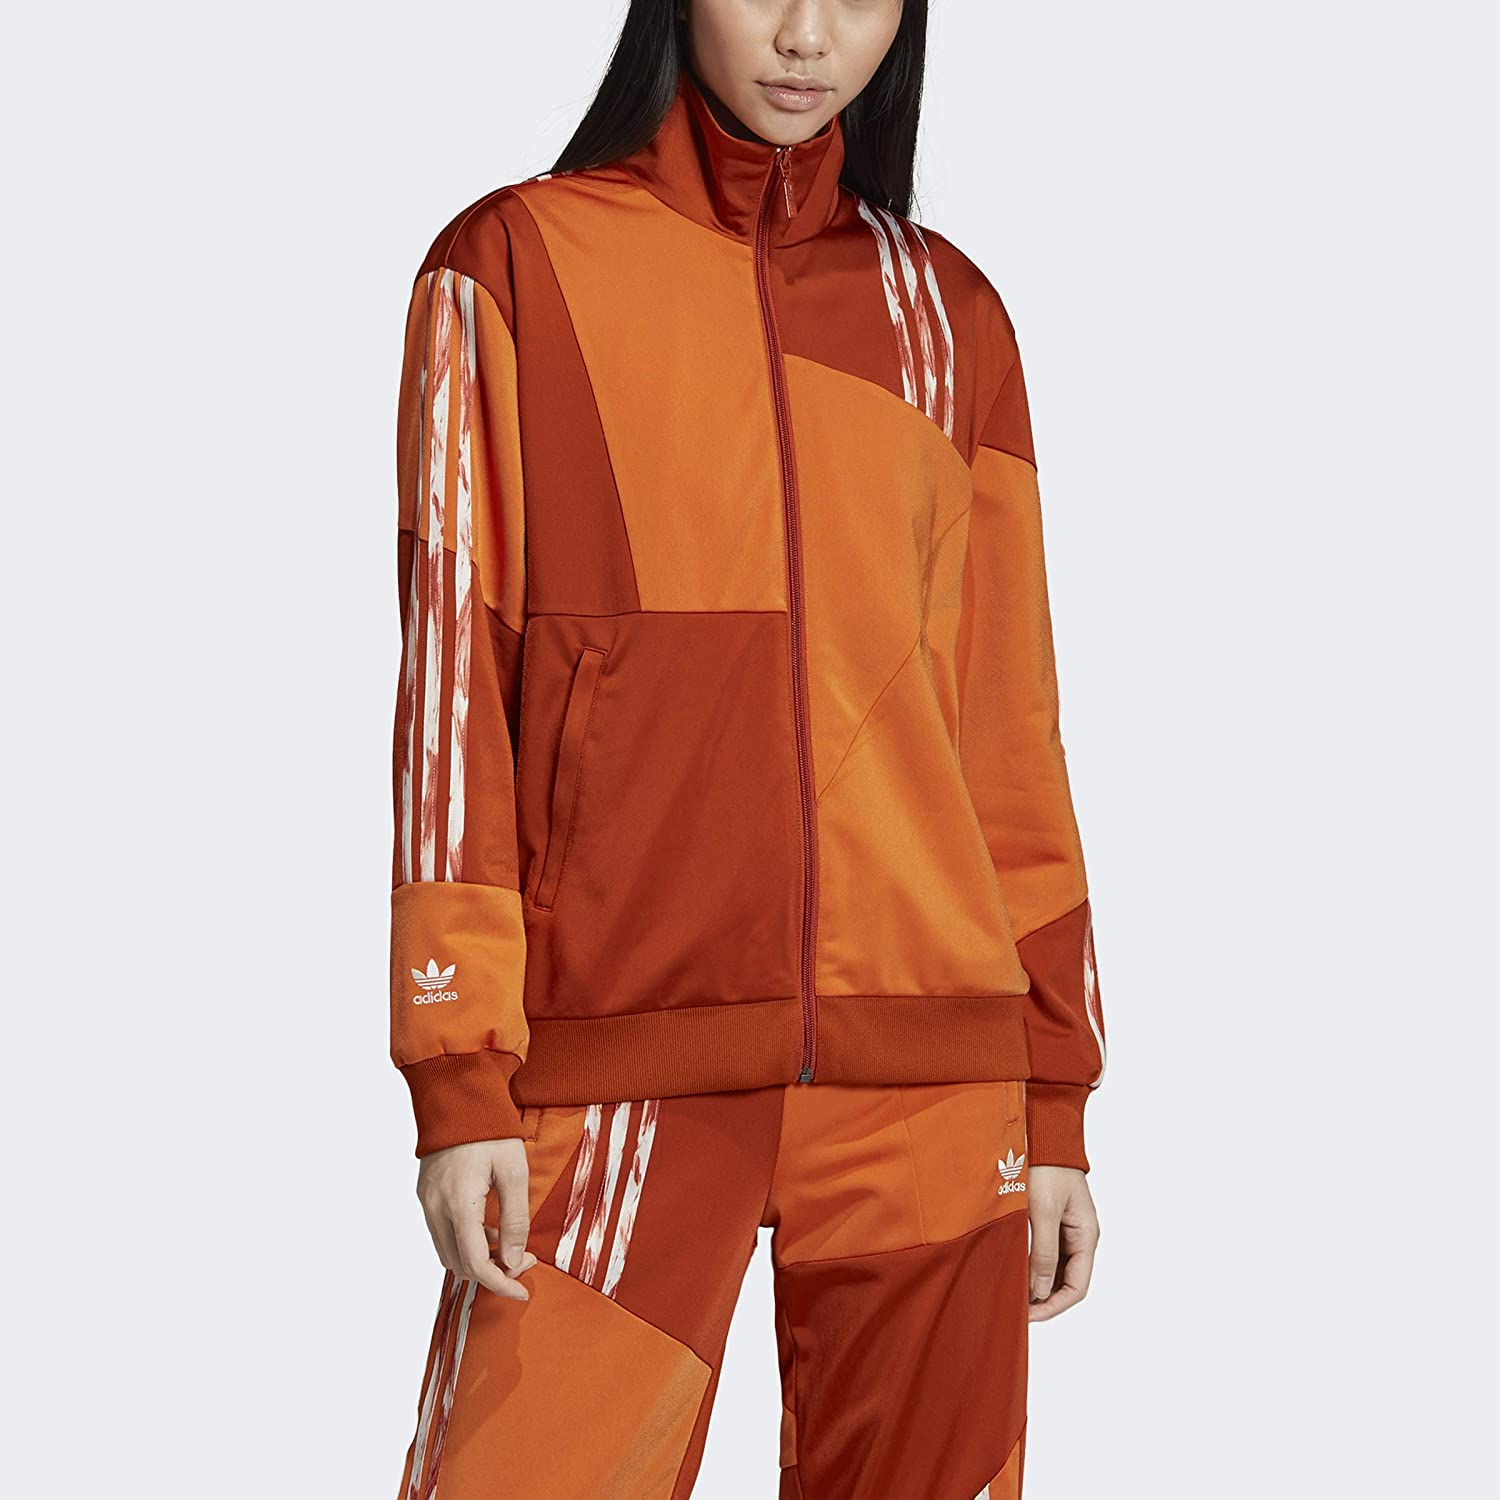 adidas Originals Women's Daniëlle Cathari Fox Red Firebird Track Jacket FN2778,Size Small